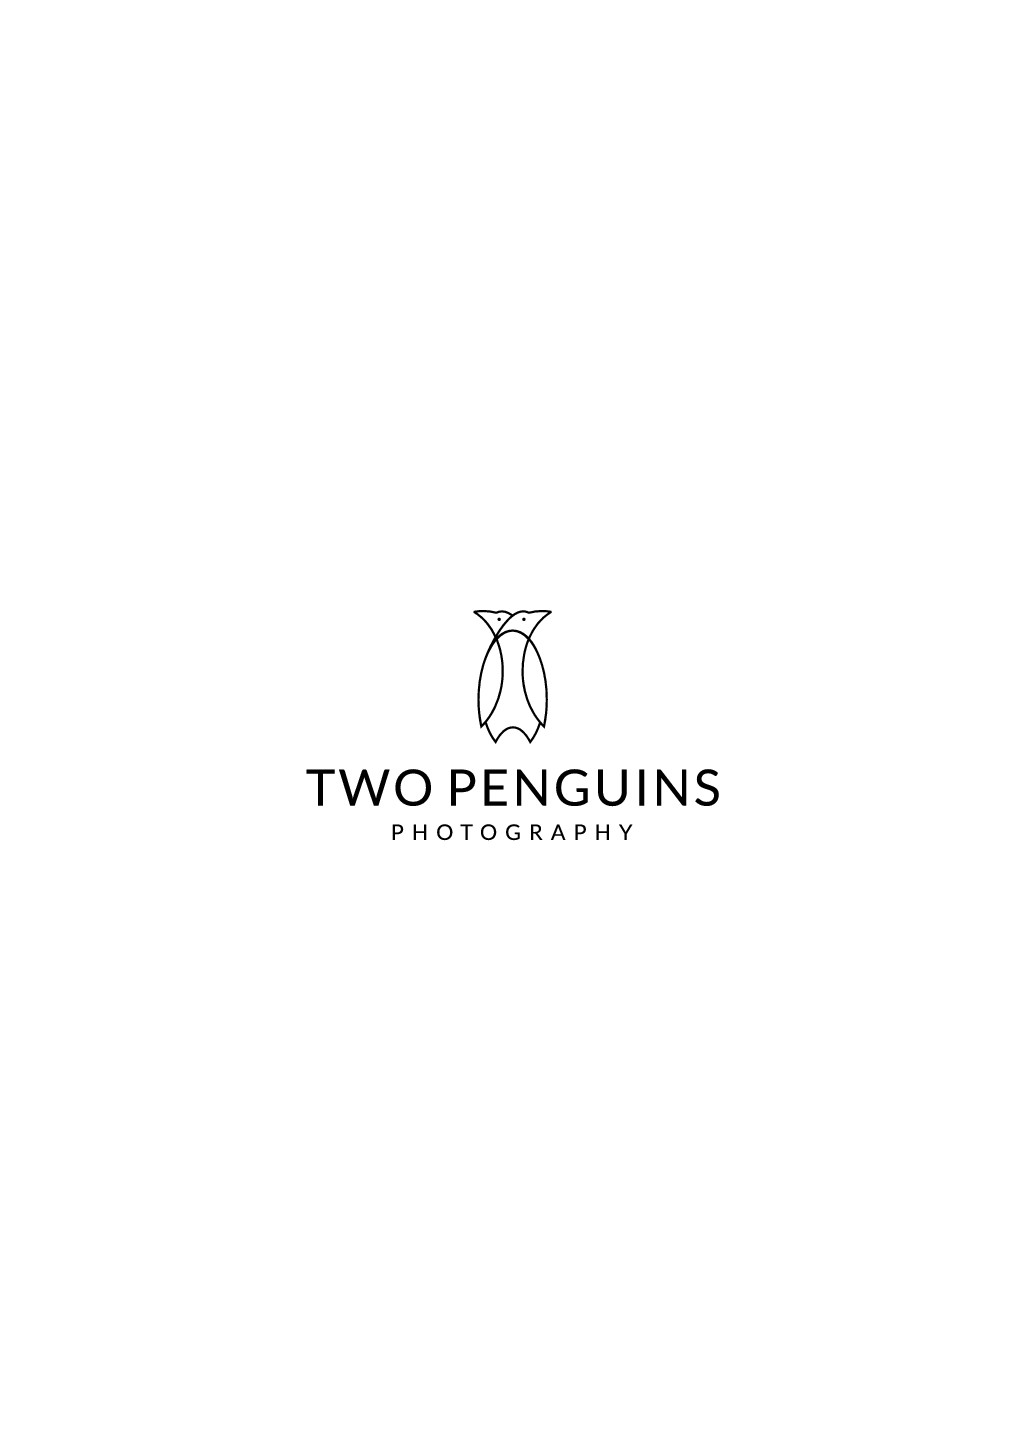 Two Penguins photography logo